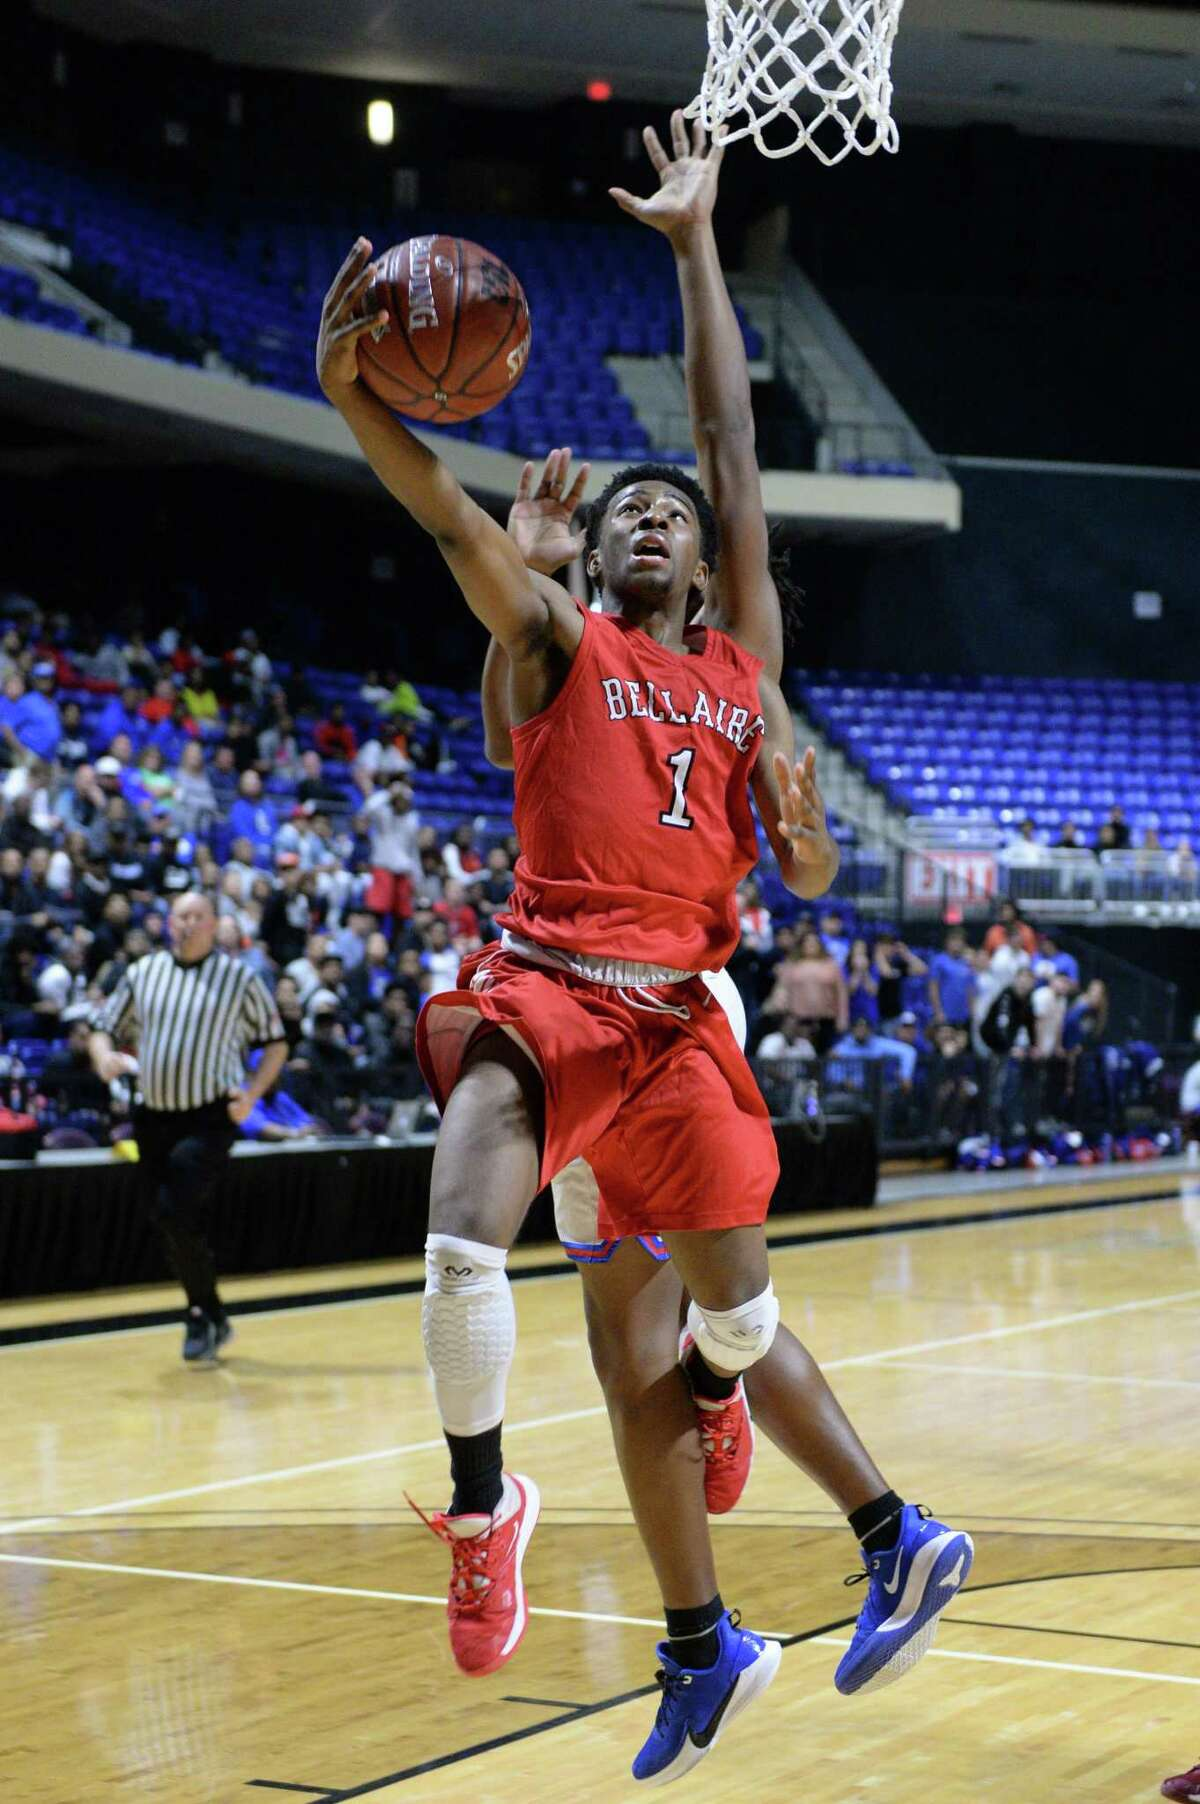 Elijah Lawrence (1) of Bellaire drives to the basket during the fourth quarter of the Boys 6A Region III championship basketball game between the Bellaire Cardinals and the Dickinson Gators on Saturday, March 7, 2020 at the Berry Center, Cypress, TX.